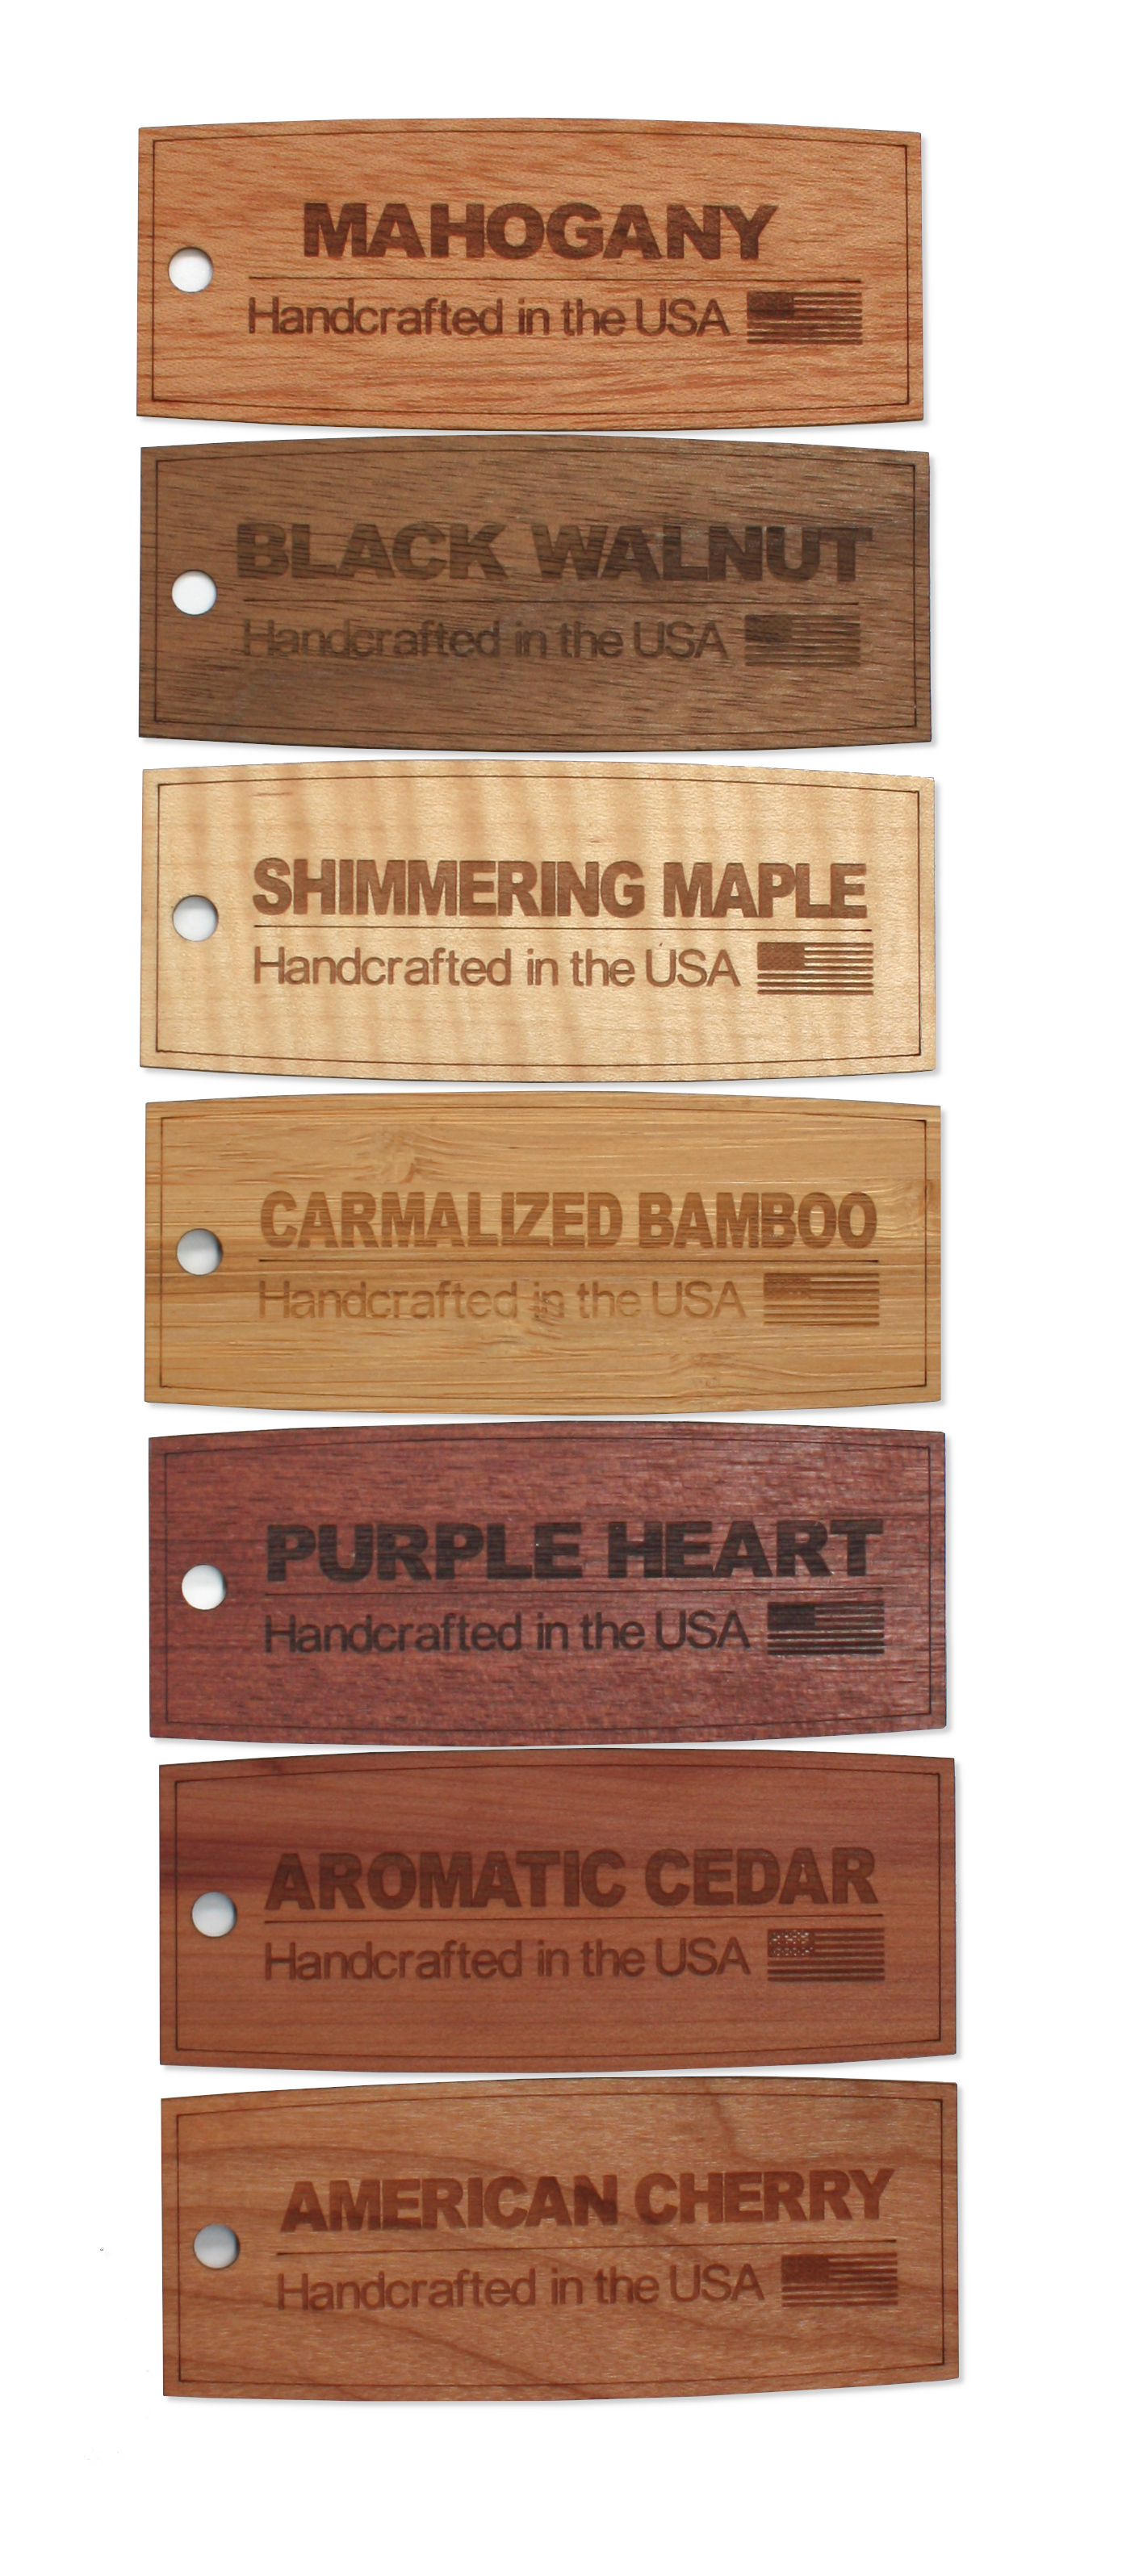 7 Wood Species for laser engraving wooden promotional products